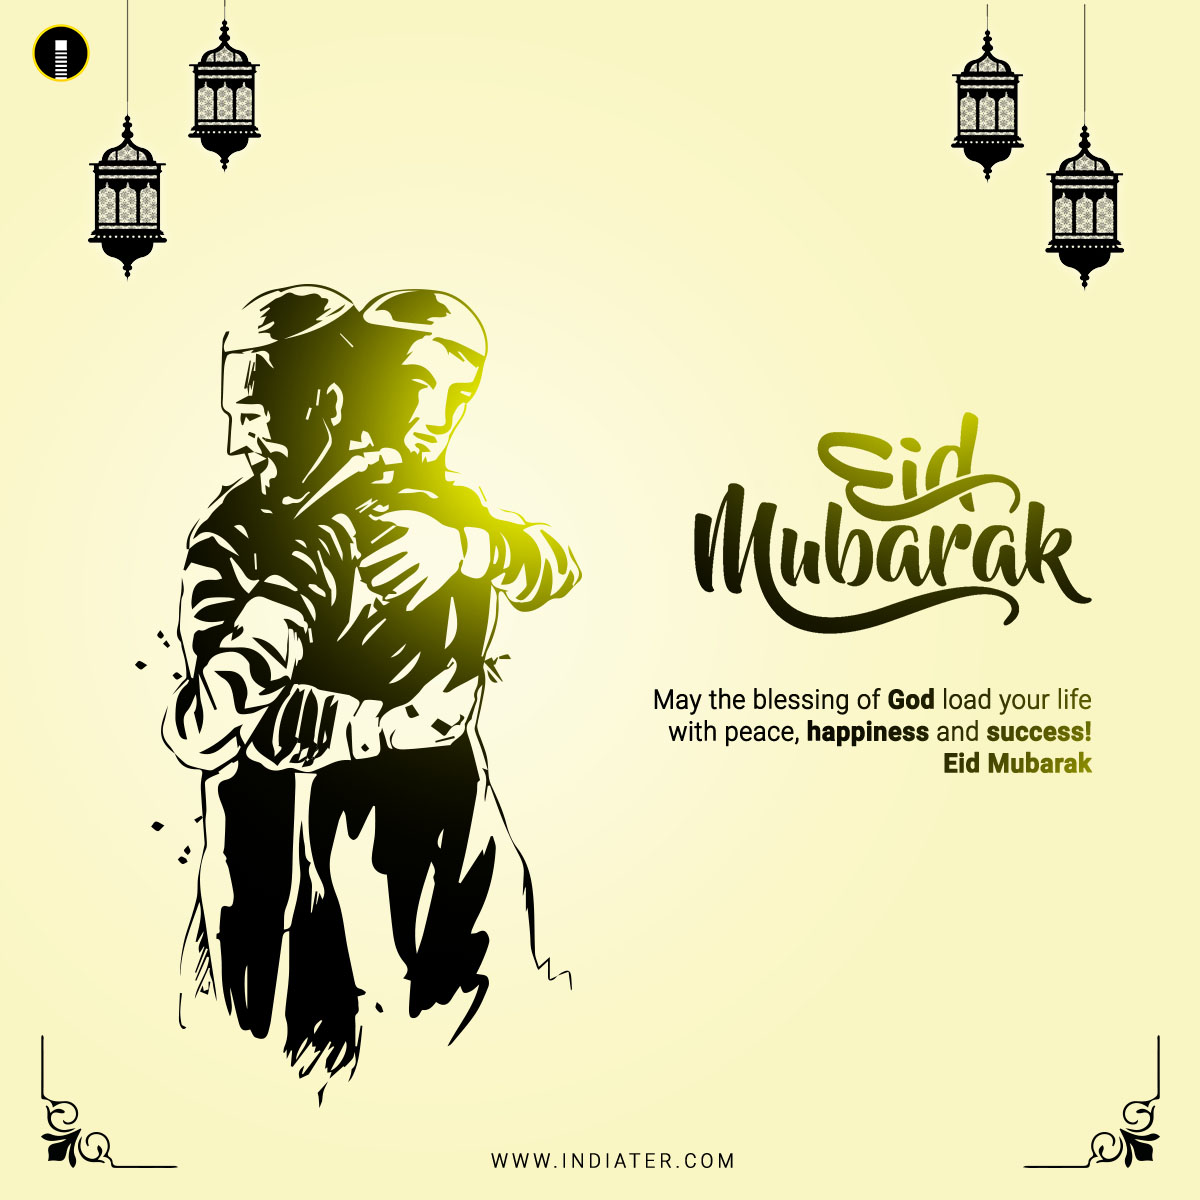 Eid Mubarak Celebration Bakra Eid with e-greeting cards, Banners and Backgrounds